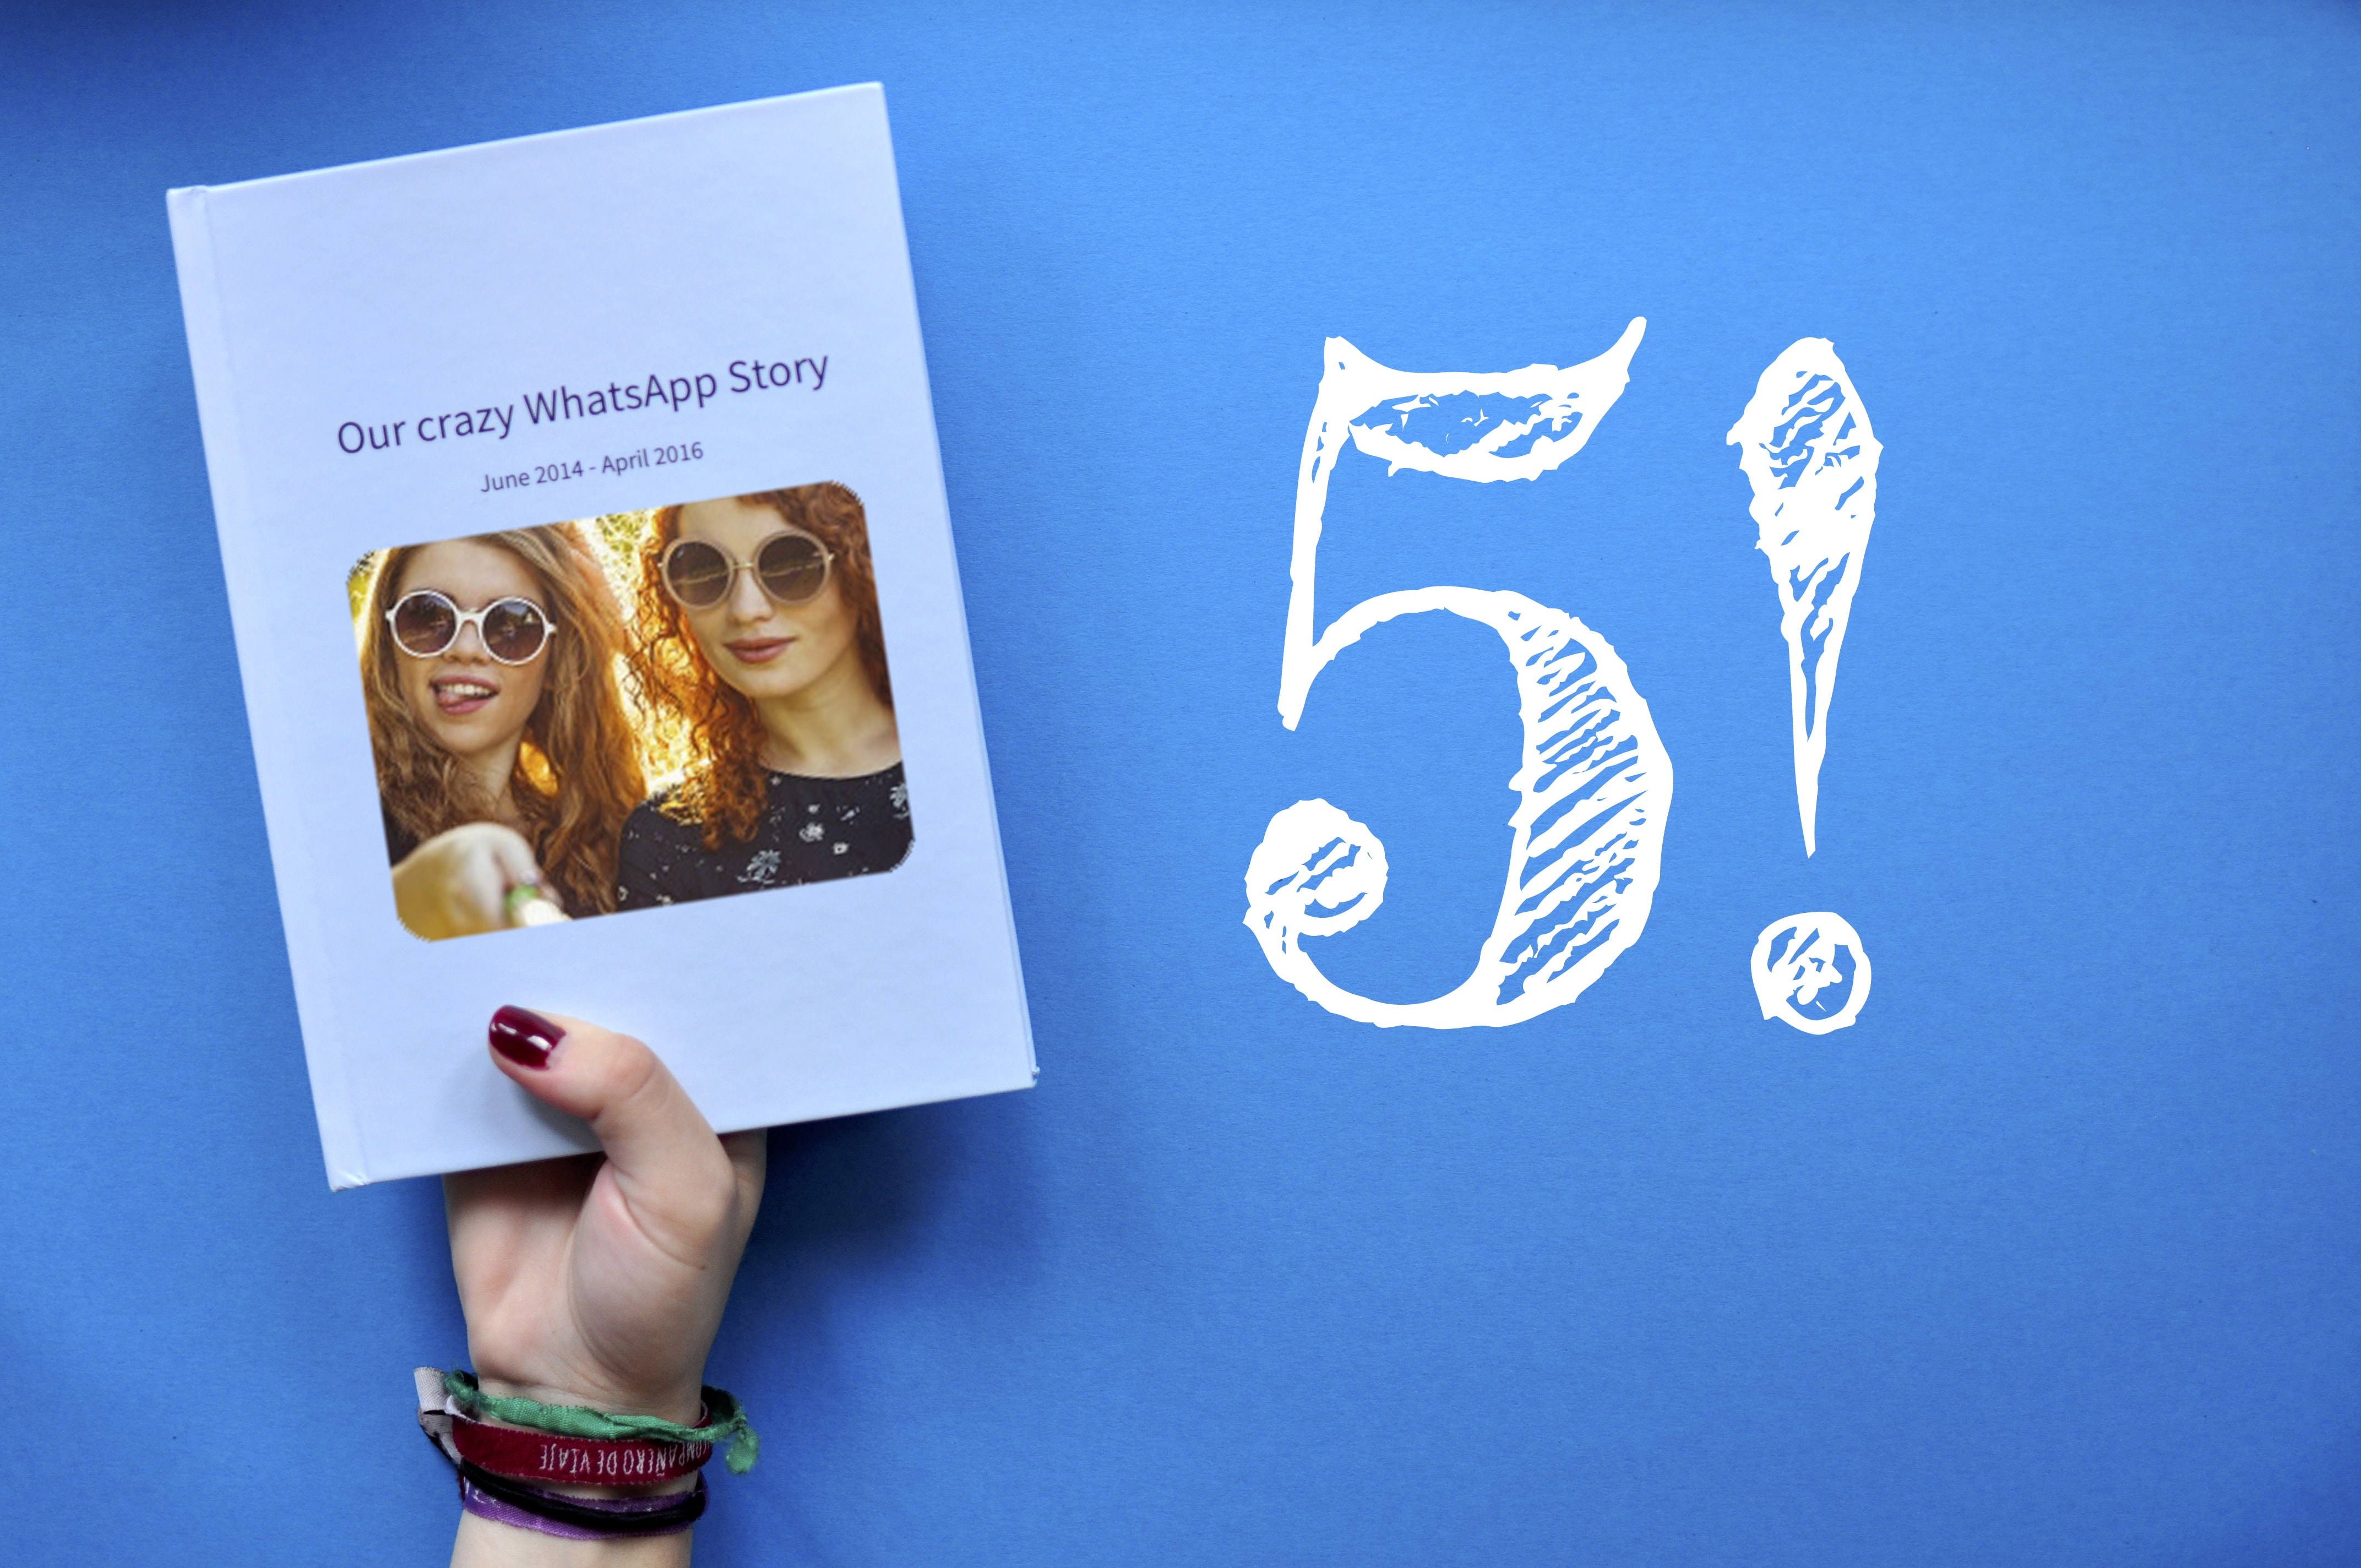 five reasons to print your WhatsApp chat as a book